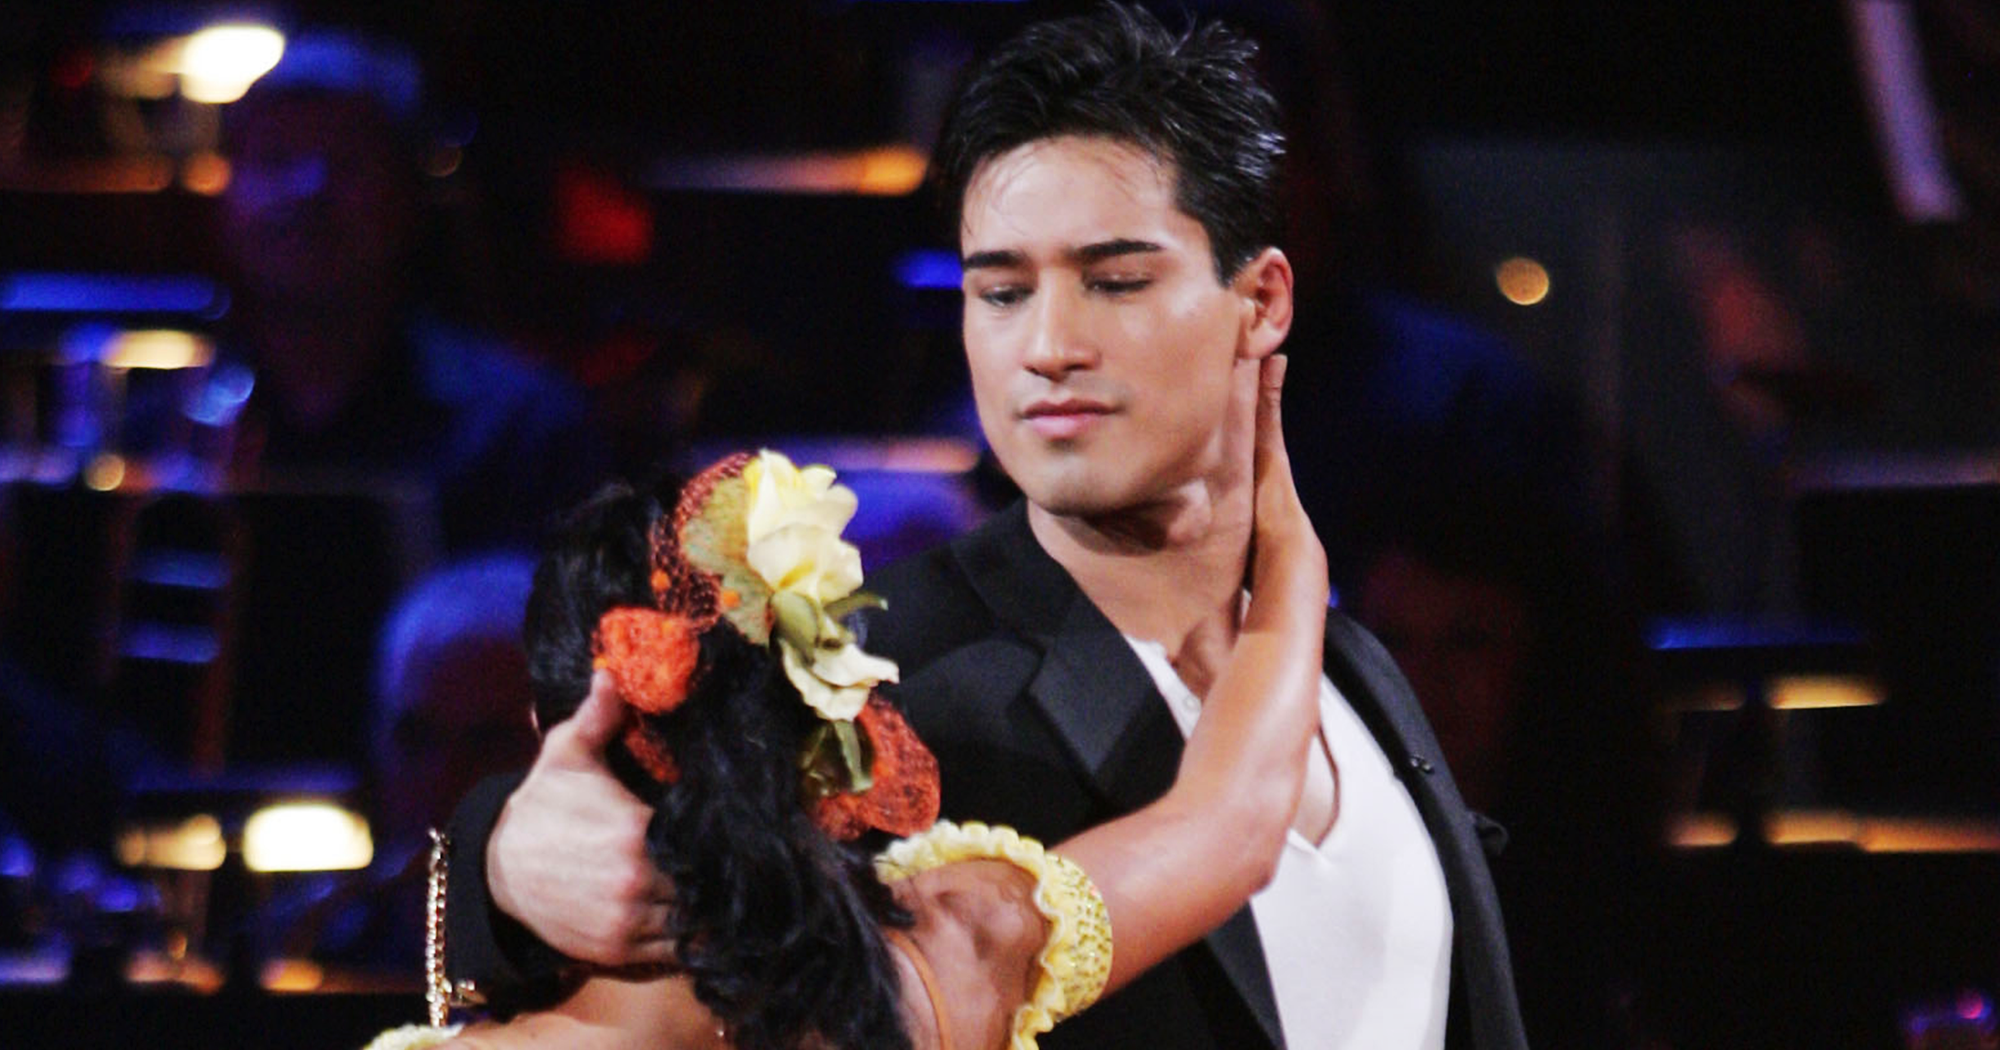 dancing with the stars hook up rumors dating a scorpio man and cancer woman